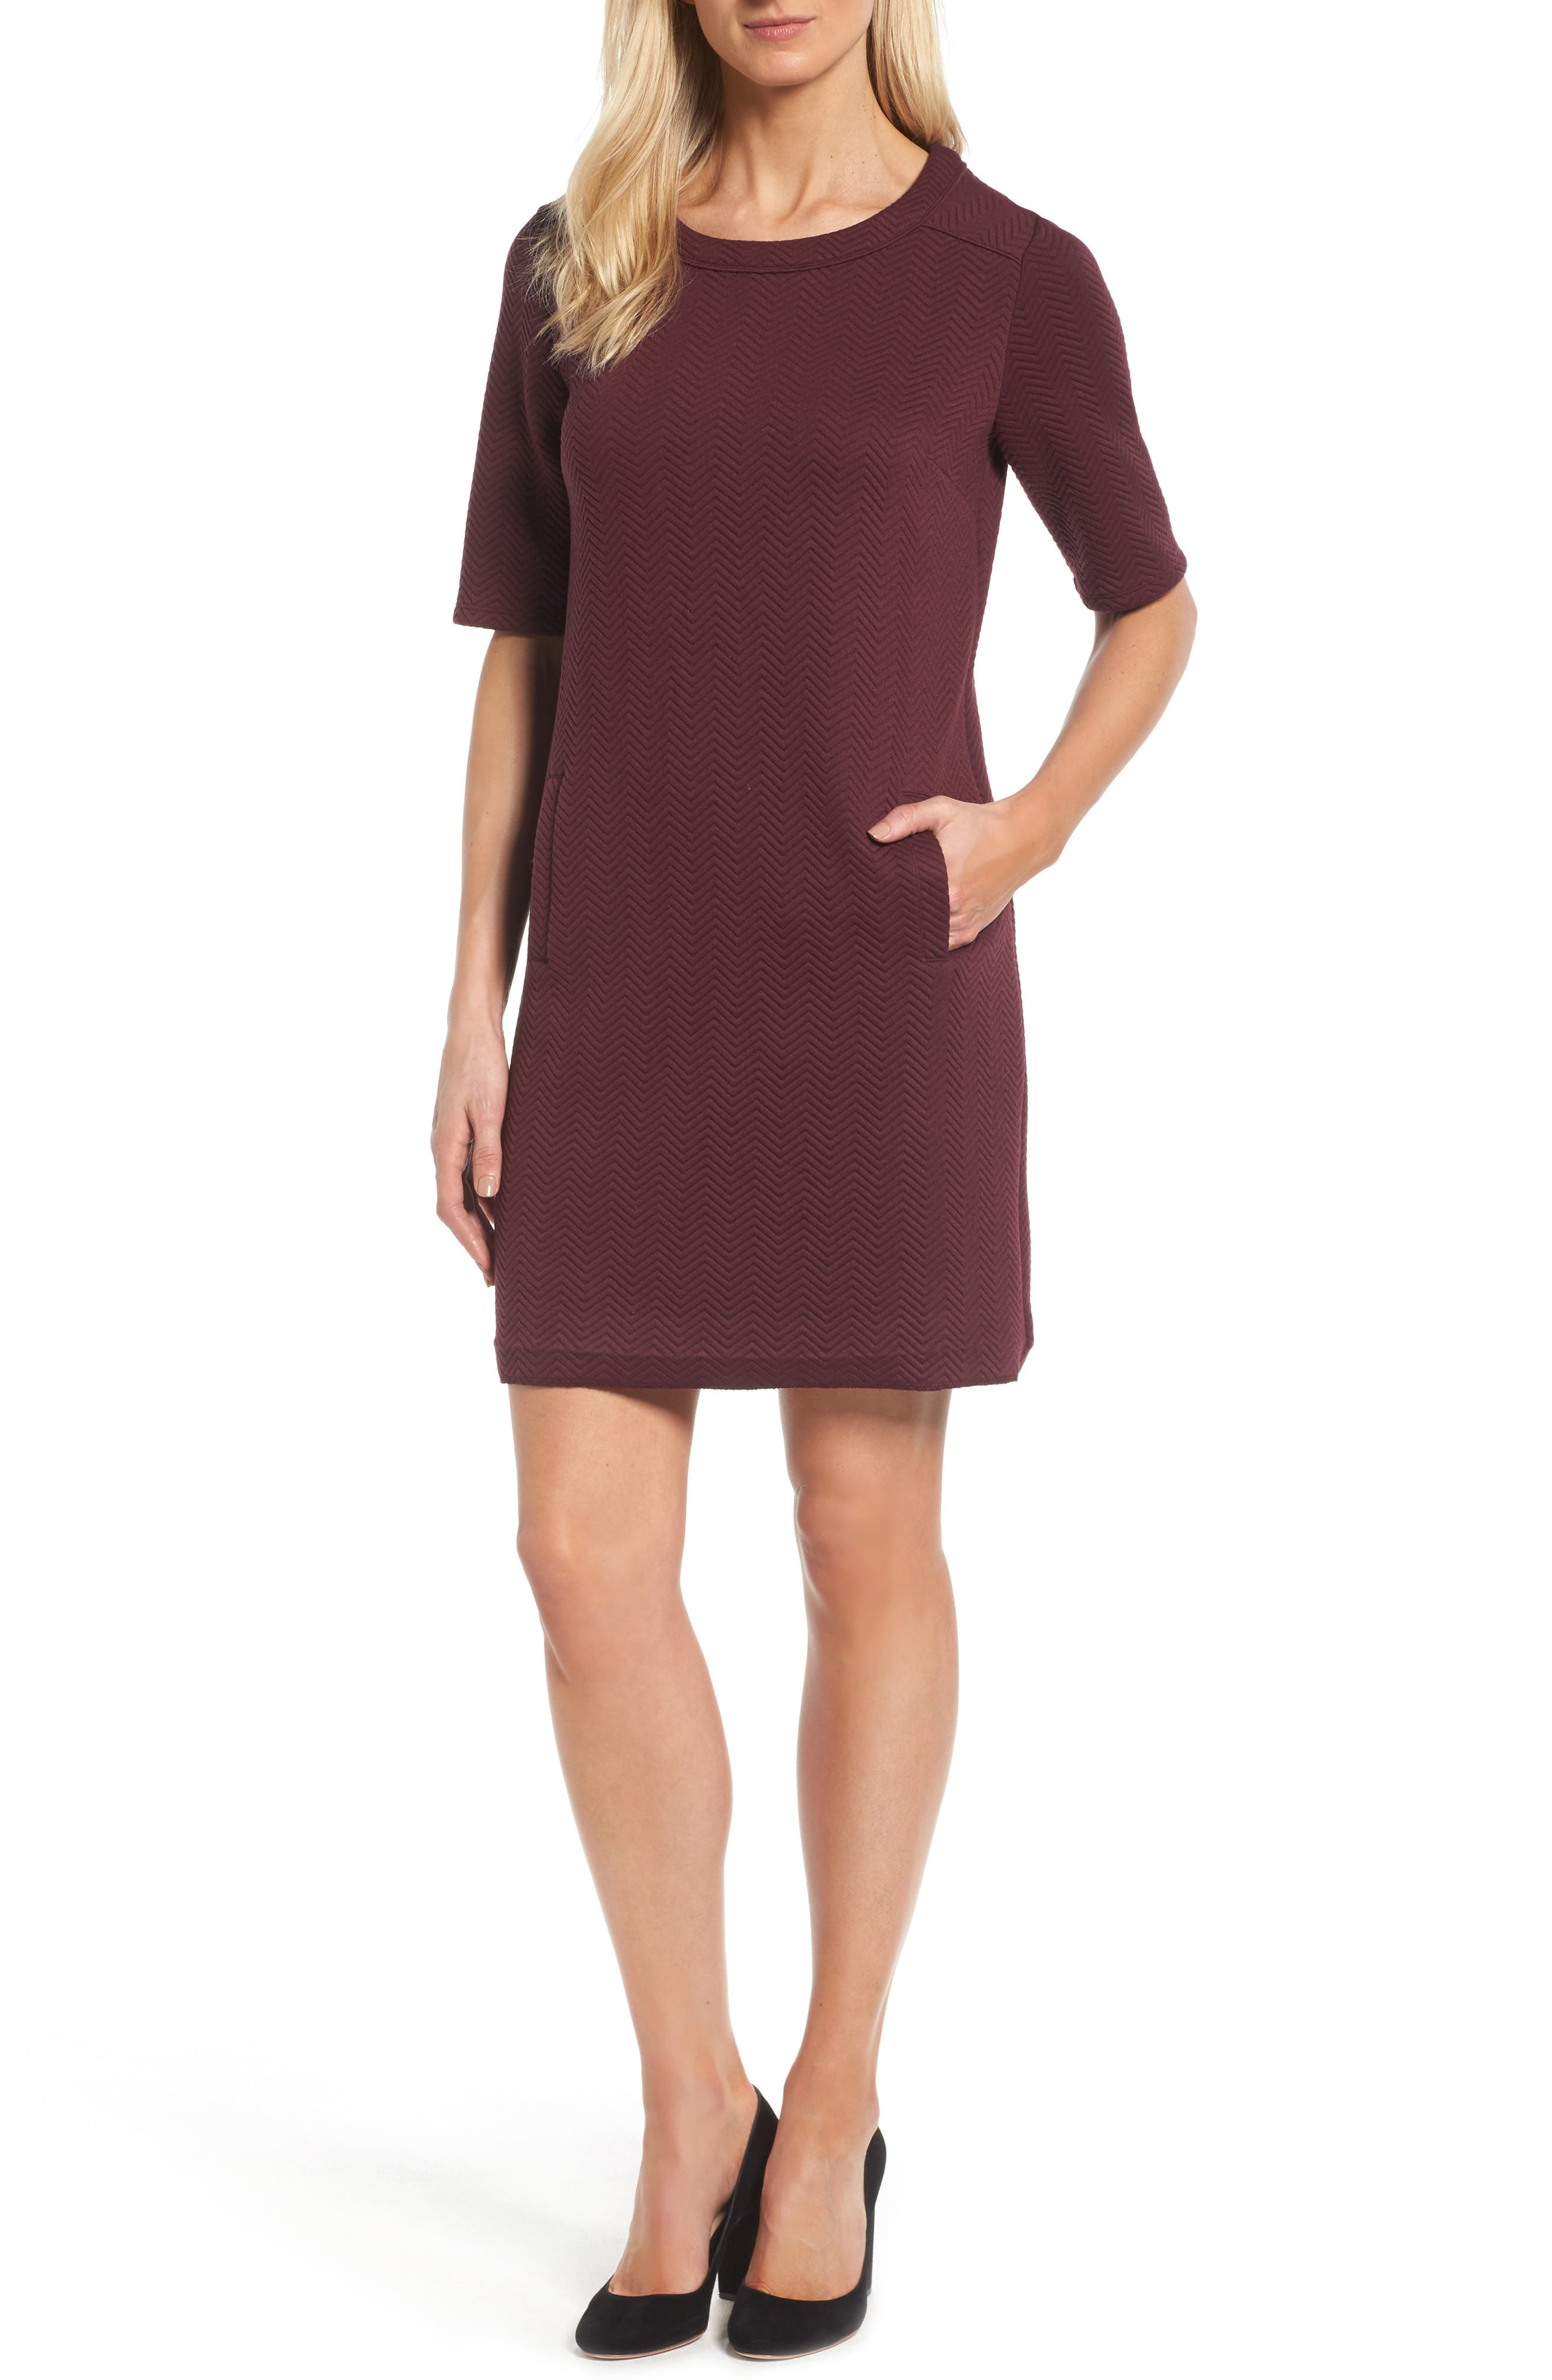 Alternate Image 1 Selected - Halogen® Textured Elbow Sleeve Tunic Dress (Regular & Petite)